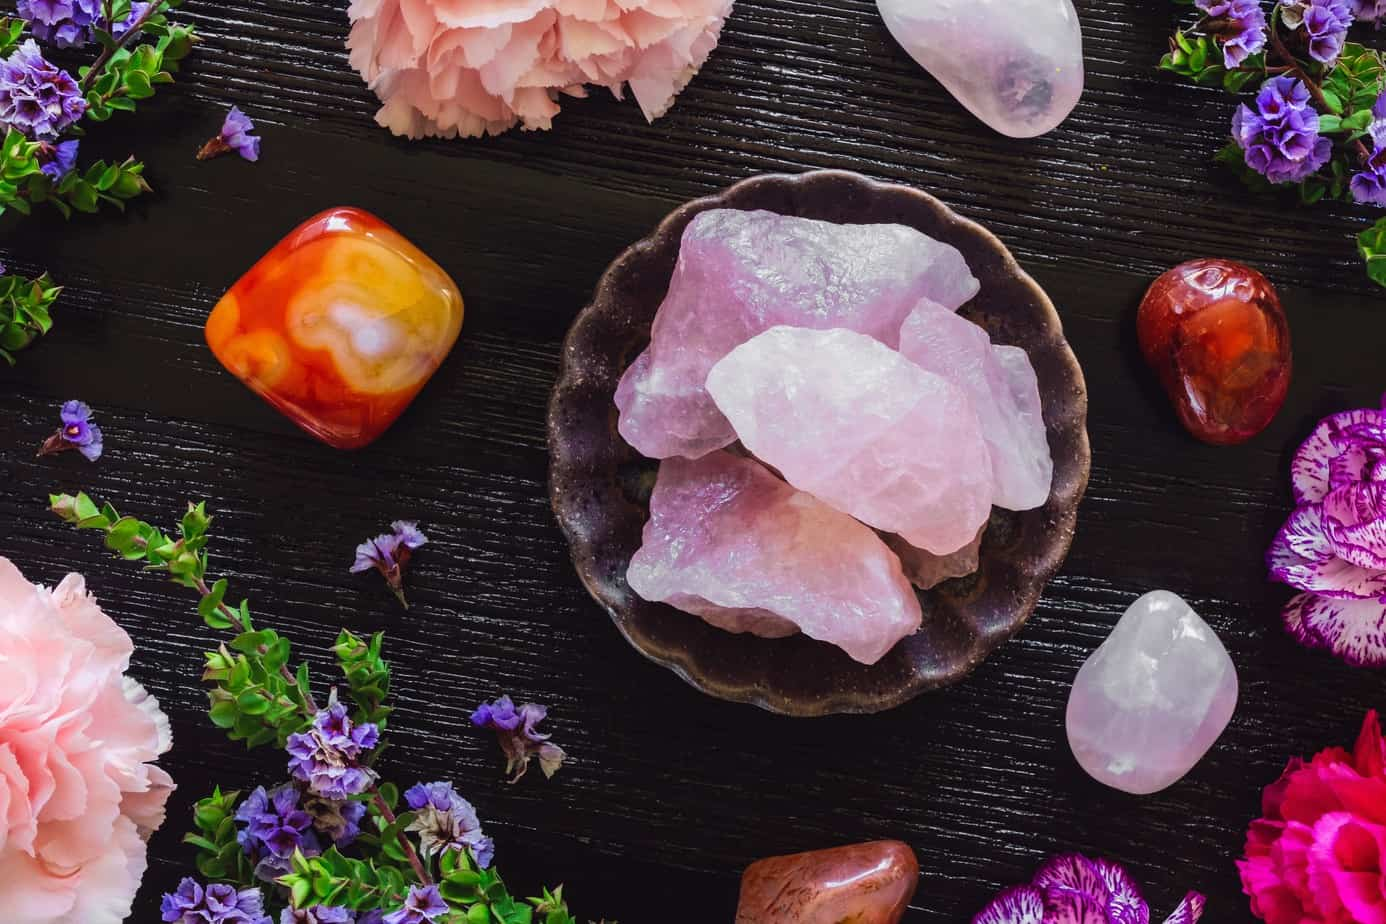 Rose Quartz and Carnelian on Dark Table with Carnations and Sea Lavender